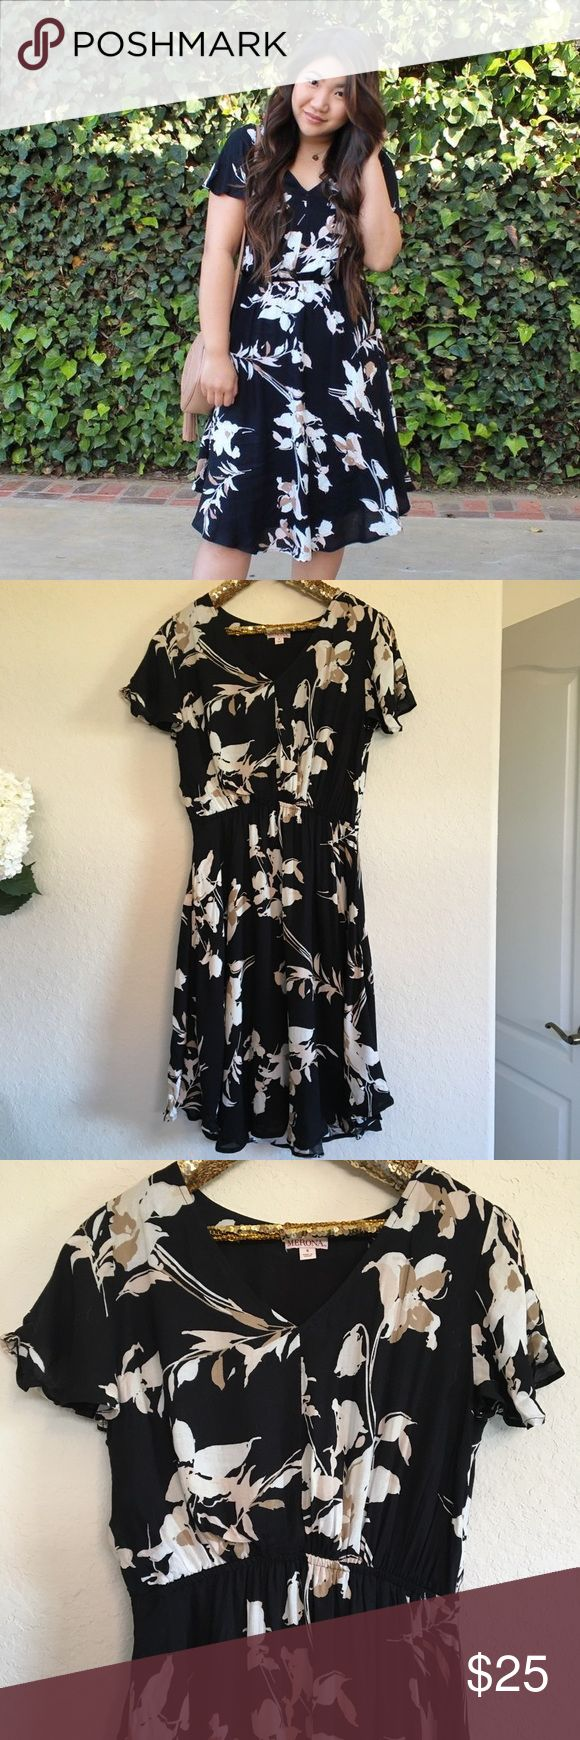 Merona Floral Dress This Merona floral dress has only been worn once so it's in perfect condition! It's perfect for fall and can easily be dressed up or down! It has a cinched waist and is fully lined.  🚭 From a smoke-free home ❌ No trades or off PoshMark sales 🛍 Bundles welcome and encouraged 👌🏻 Reasonable offers welcome ⚡️ Same/next day shipping 🌬 All items are steamed before shipping Merona Dresses